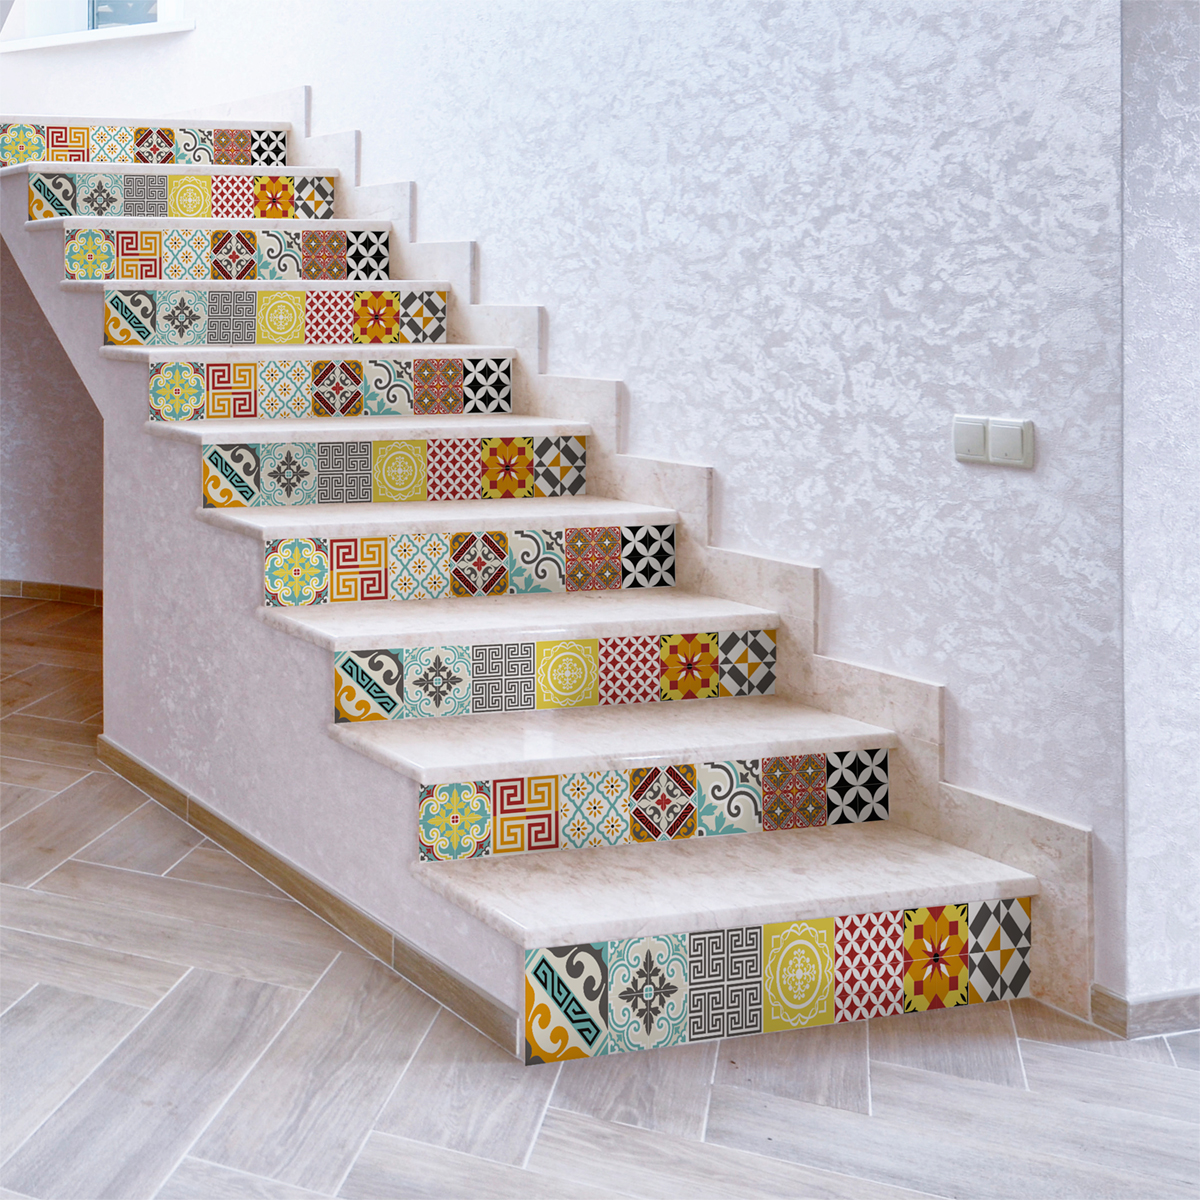 Stickers escalier carrelages mosa que multicolore x 2 for Carrelage mural multicolore